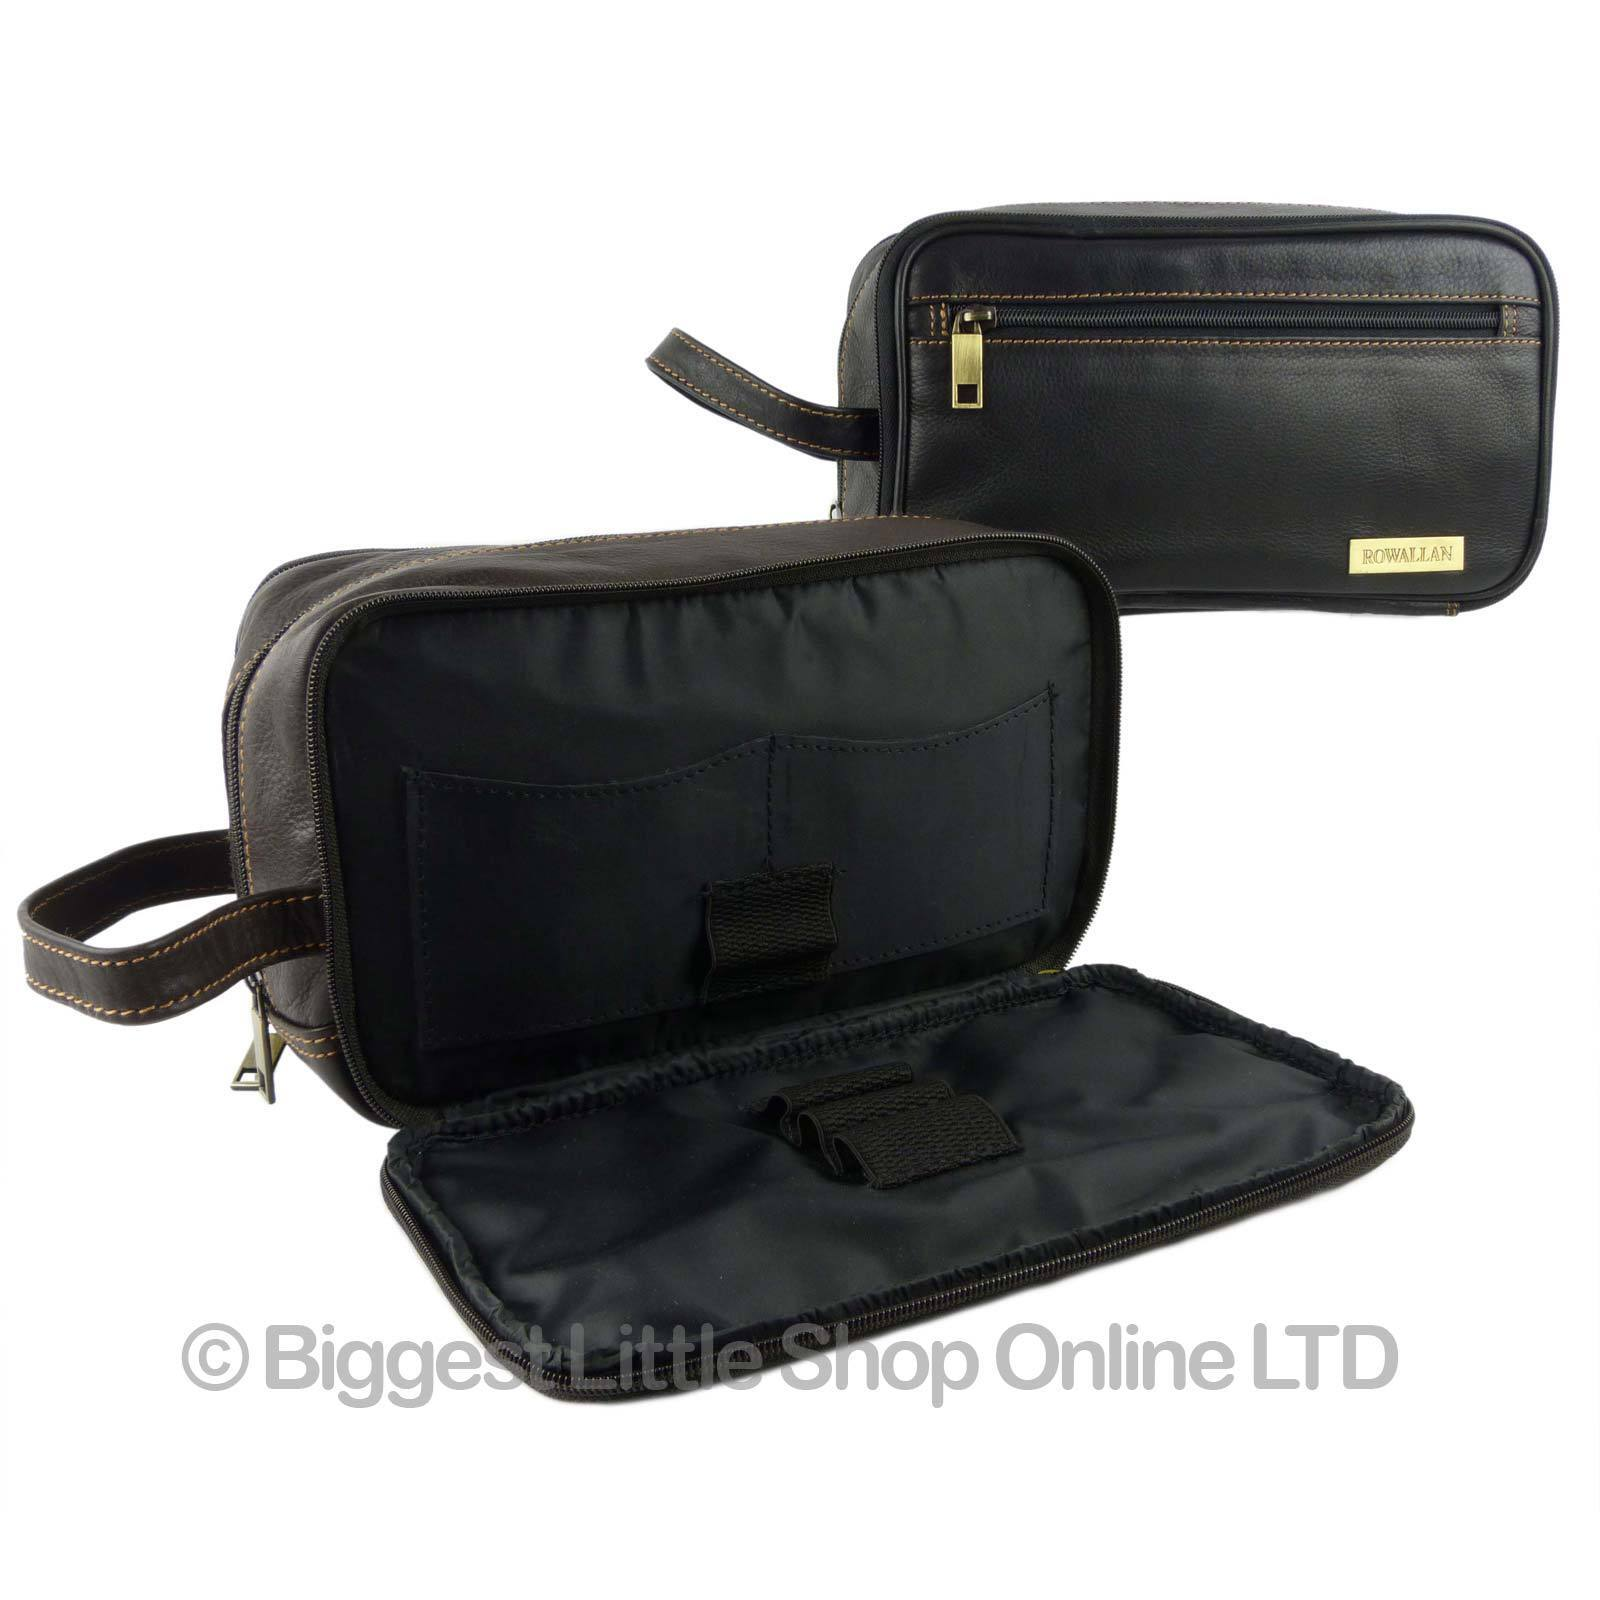 f1246990e377 Details about NEW Mens QUALITY Leather Wash Bag by Rowallan Travel Black  Brown Handy Stylish